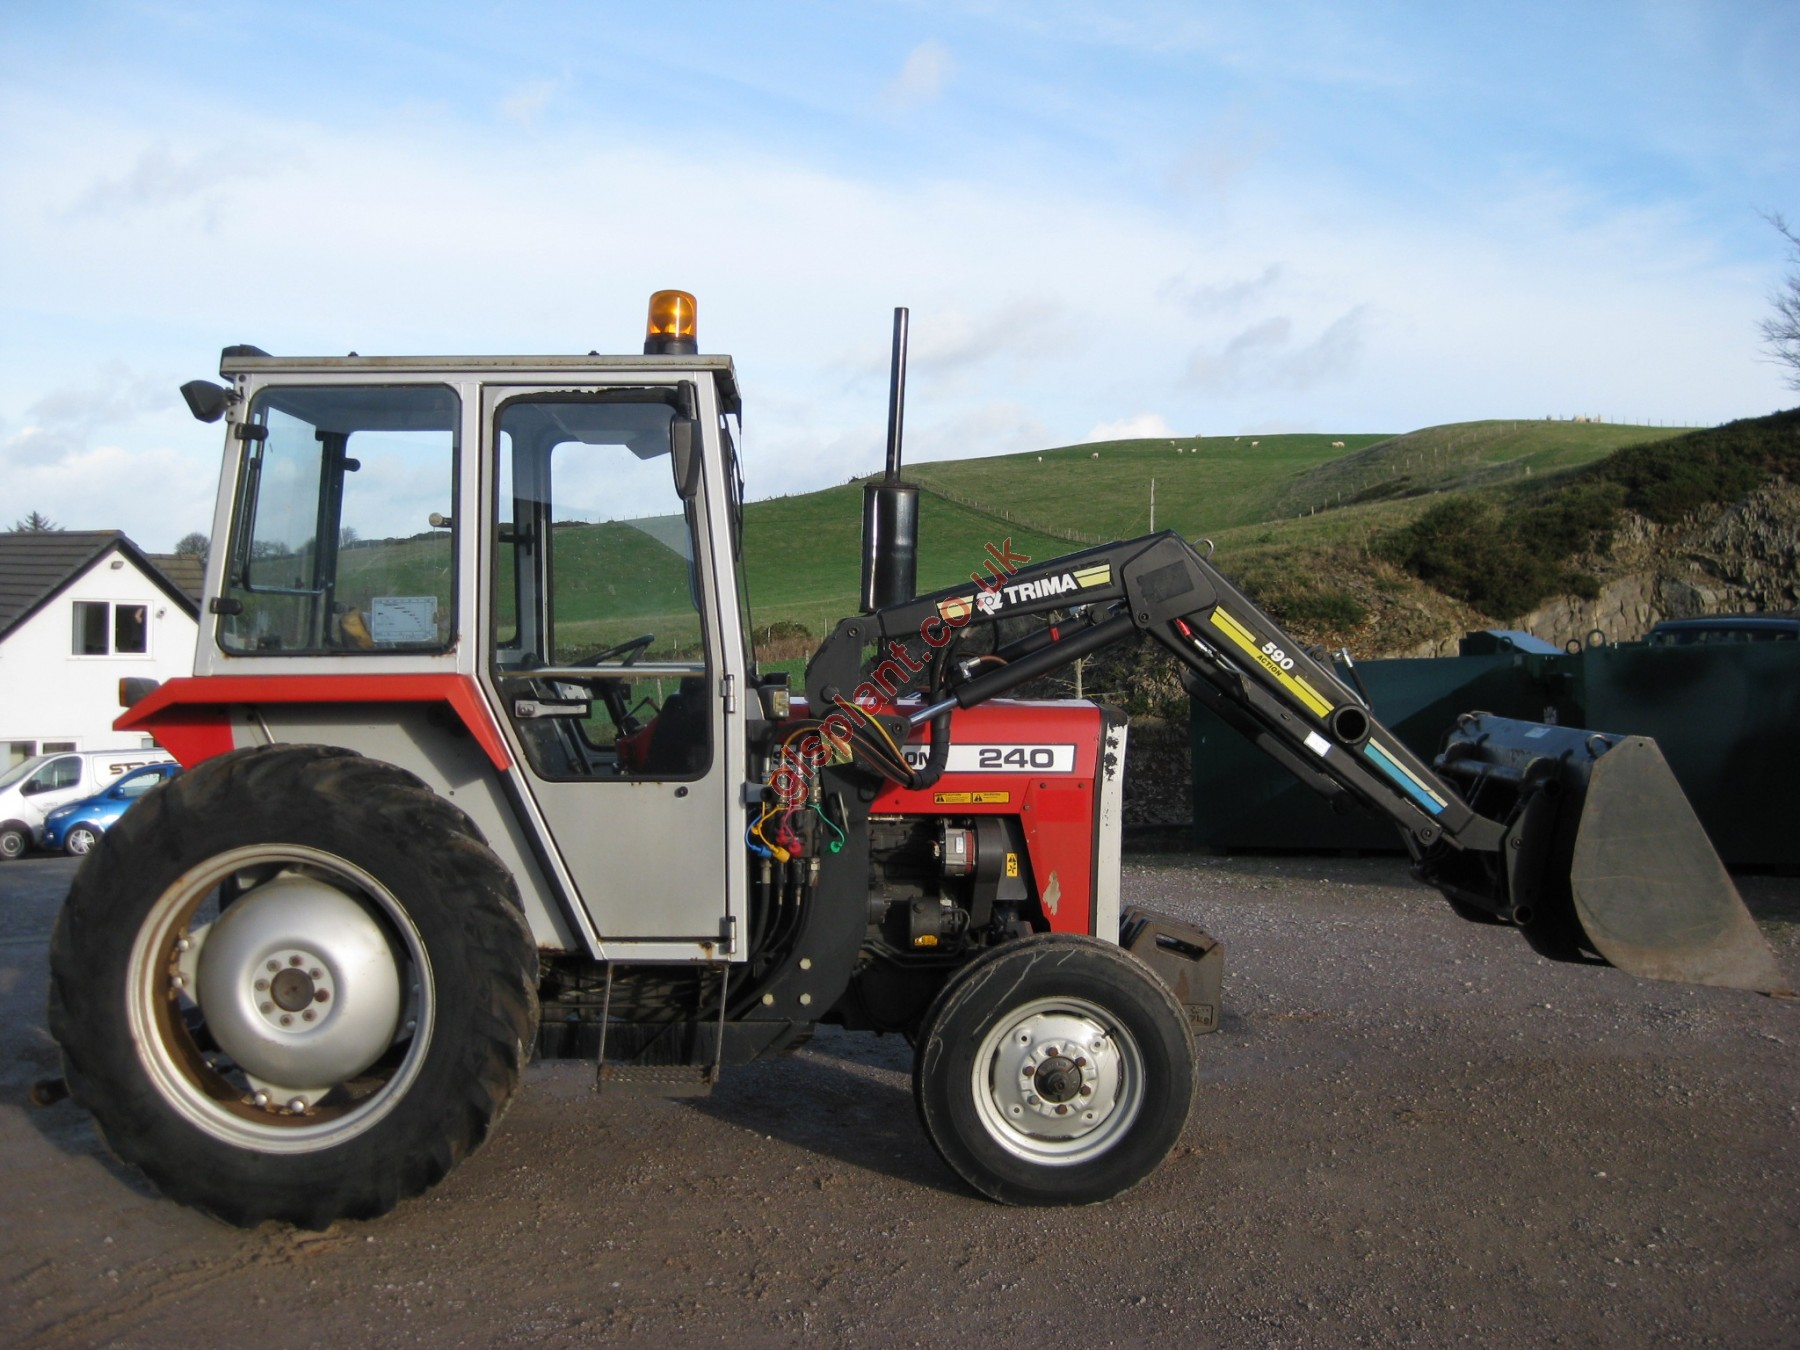 Mf 240 Tractor Grill : Massey ferguson mf tractor for sale